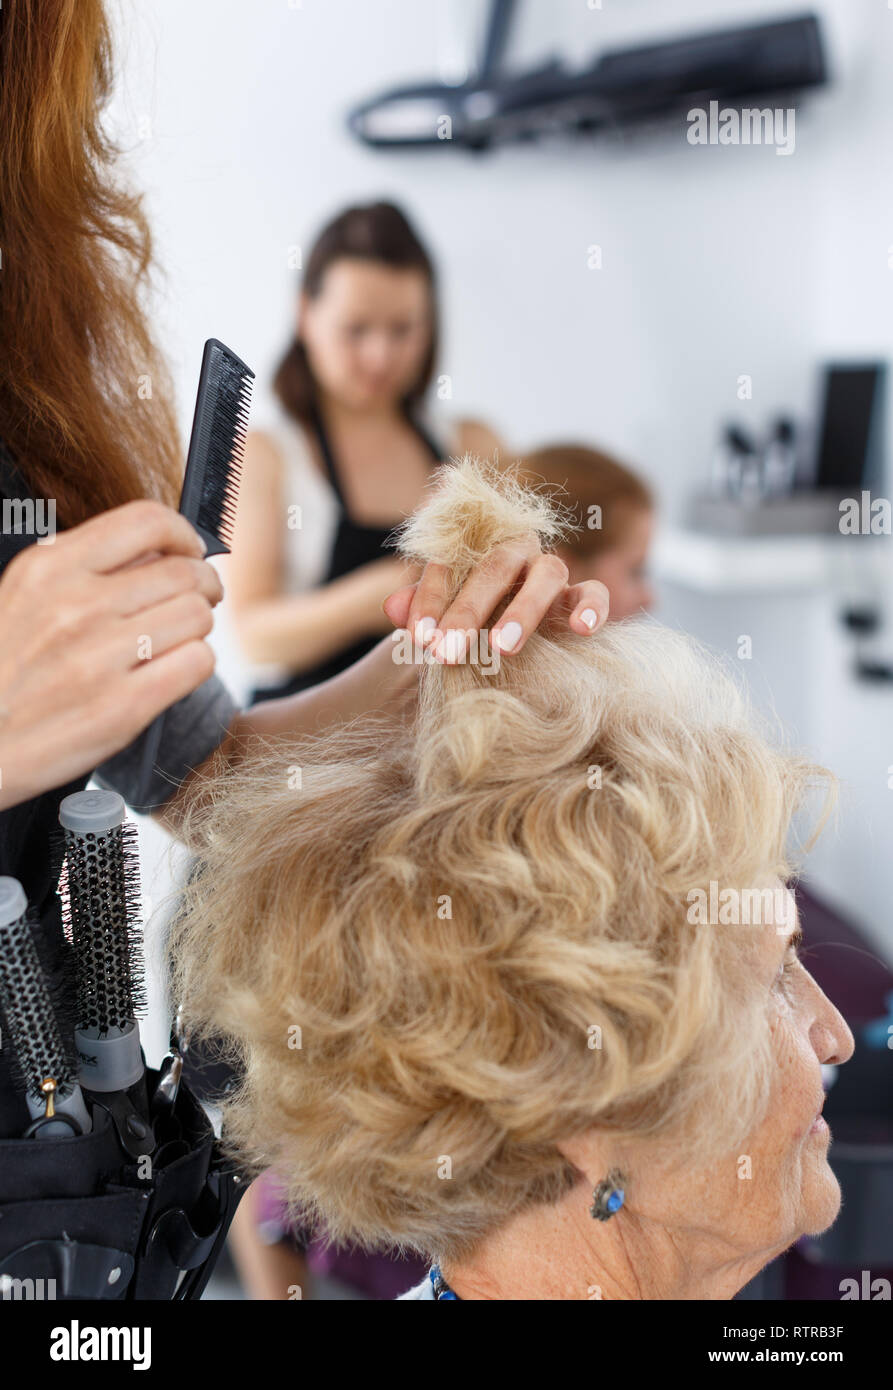 Salon Senior Closeup Of Senior Woman Getting Haircut By Professional